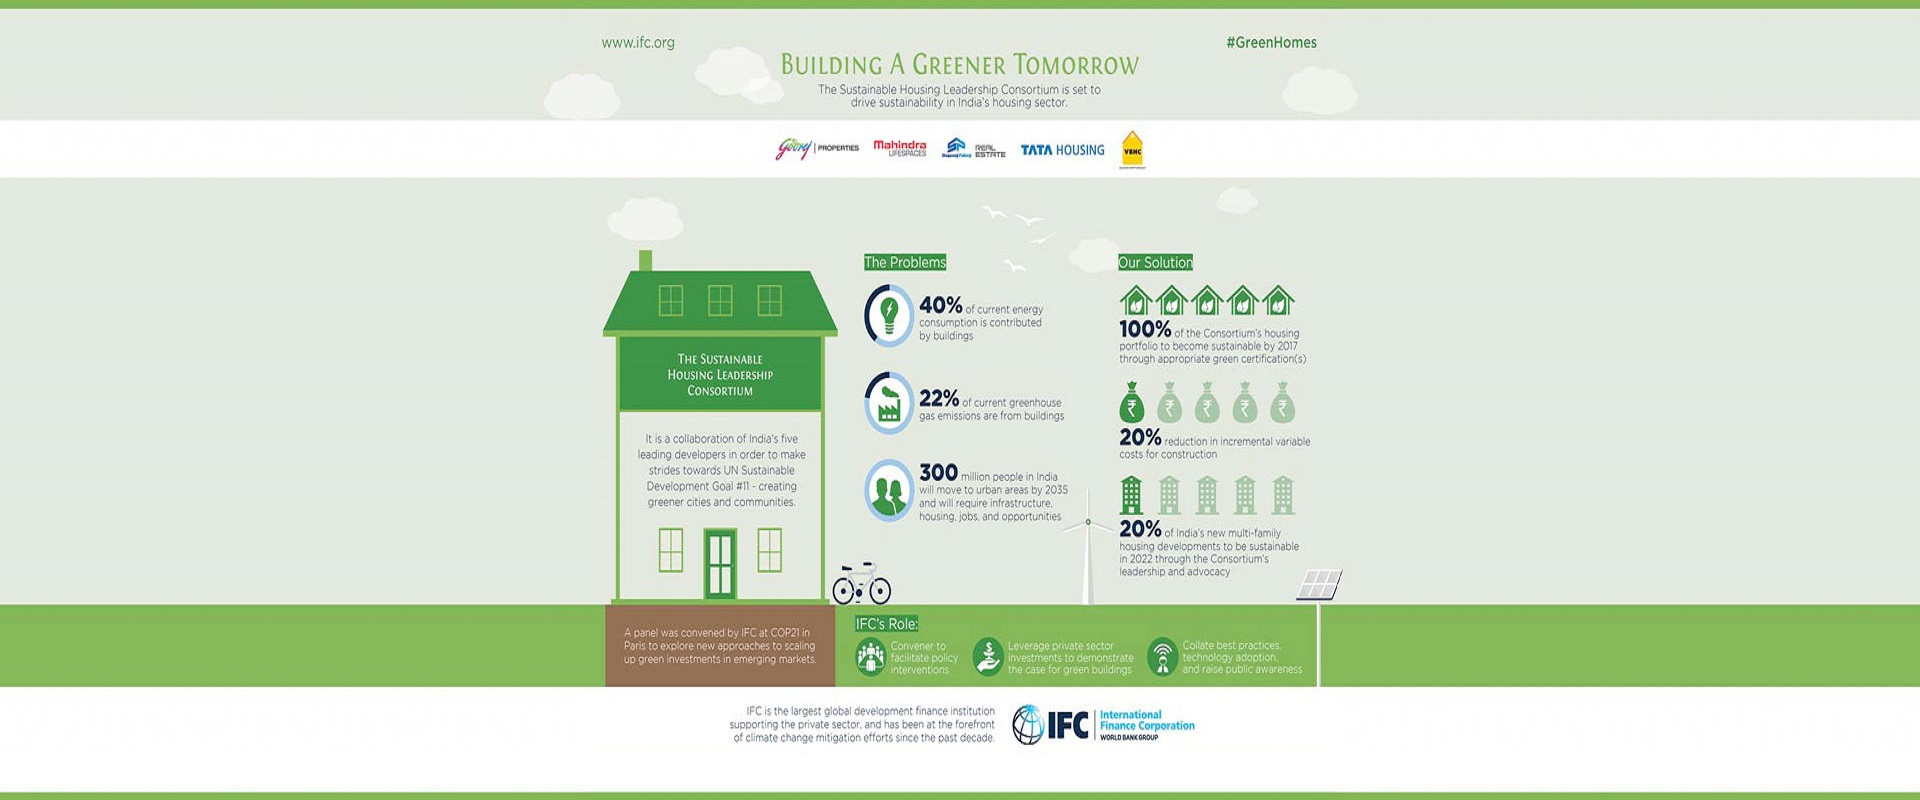 Godrej Properties is one of the five founding members of the IFC led sustainable housing leadership consortium with a mandate to drive sustainability in the Indian housing sector.